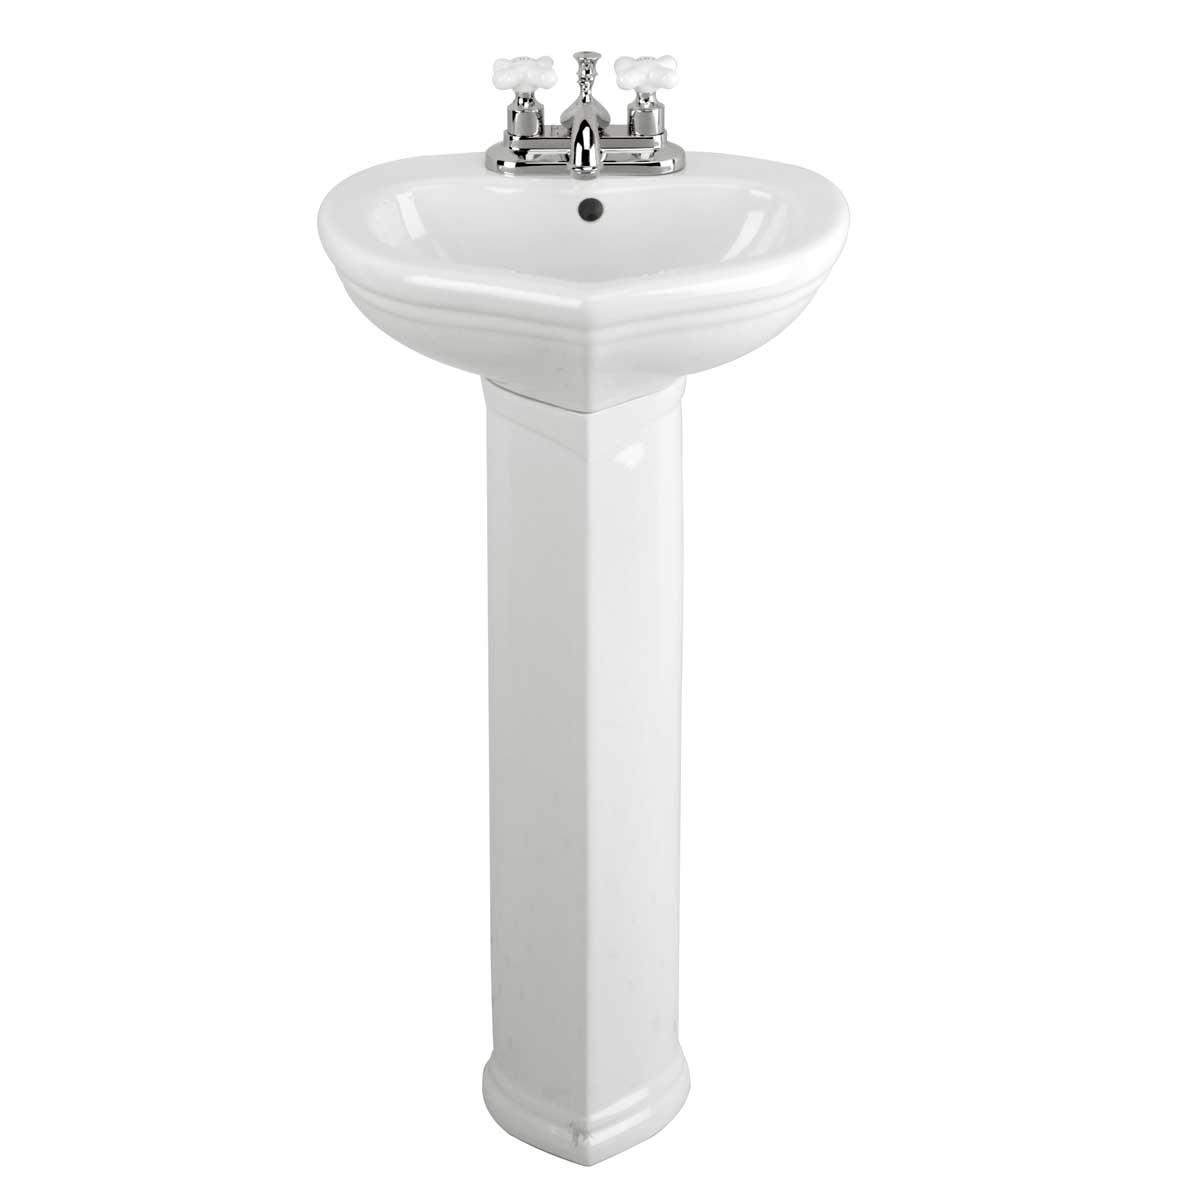 Small Pedestal Basin : Small Pedestal Sink White Bathroom China Sweet Heart